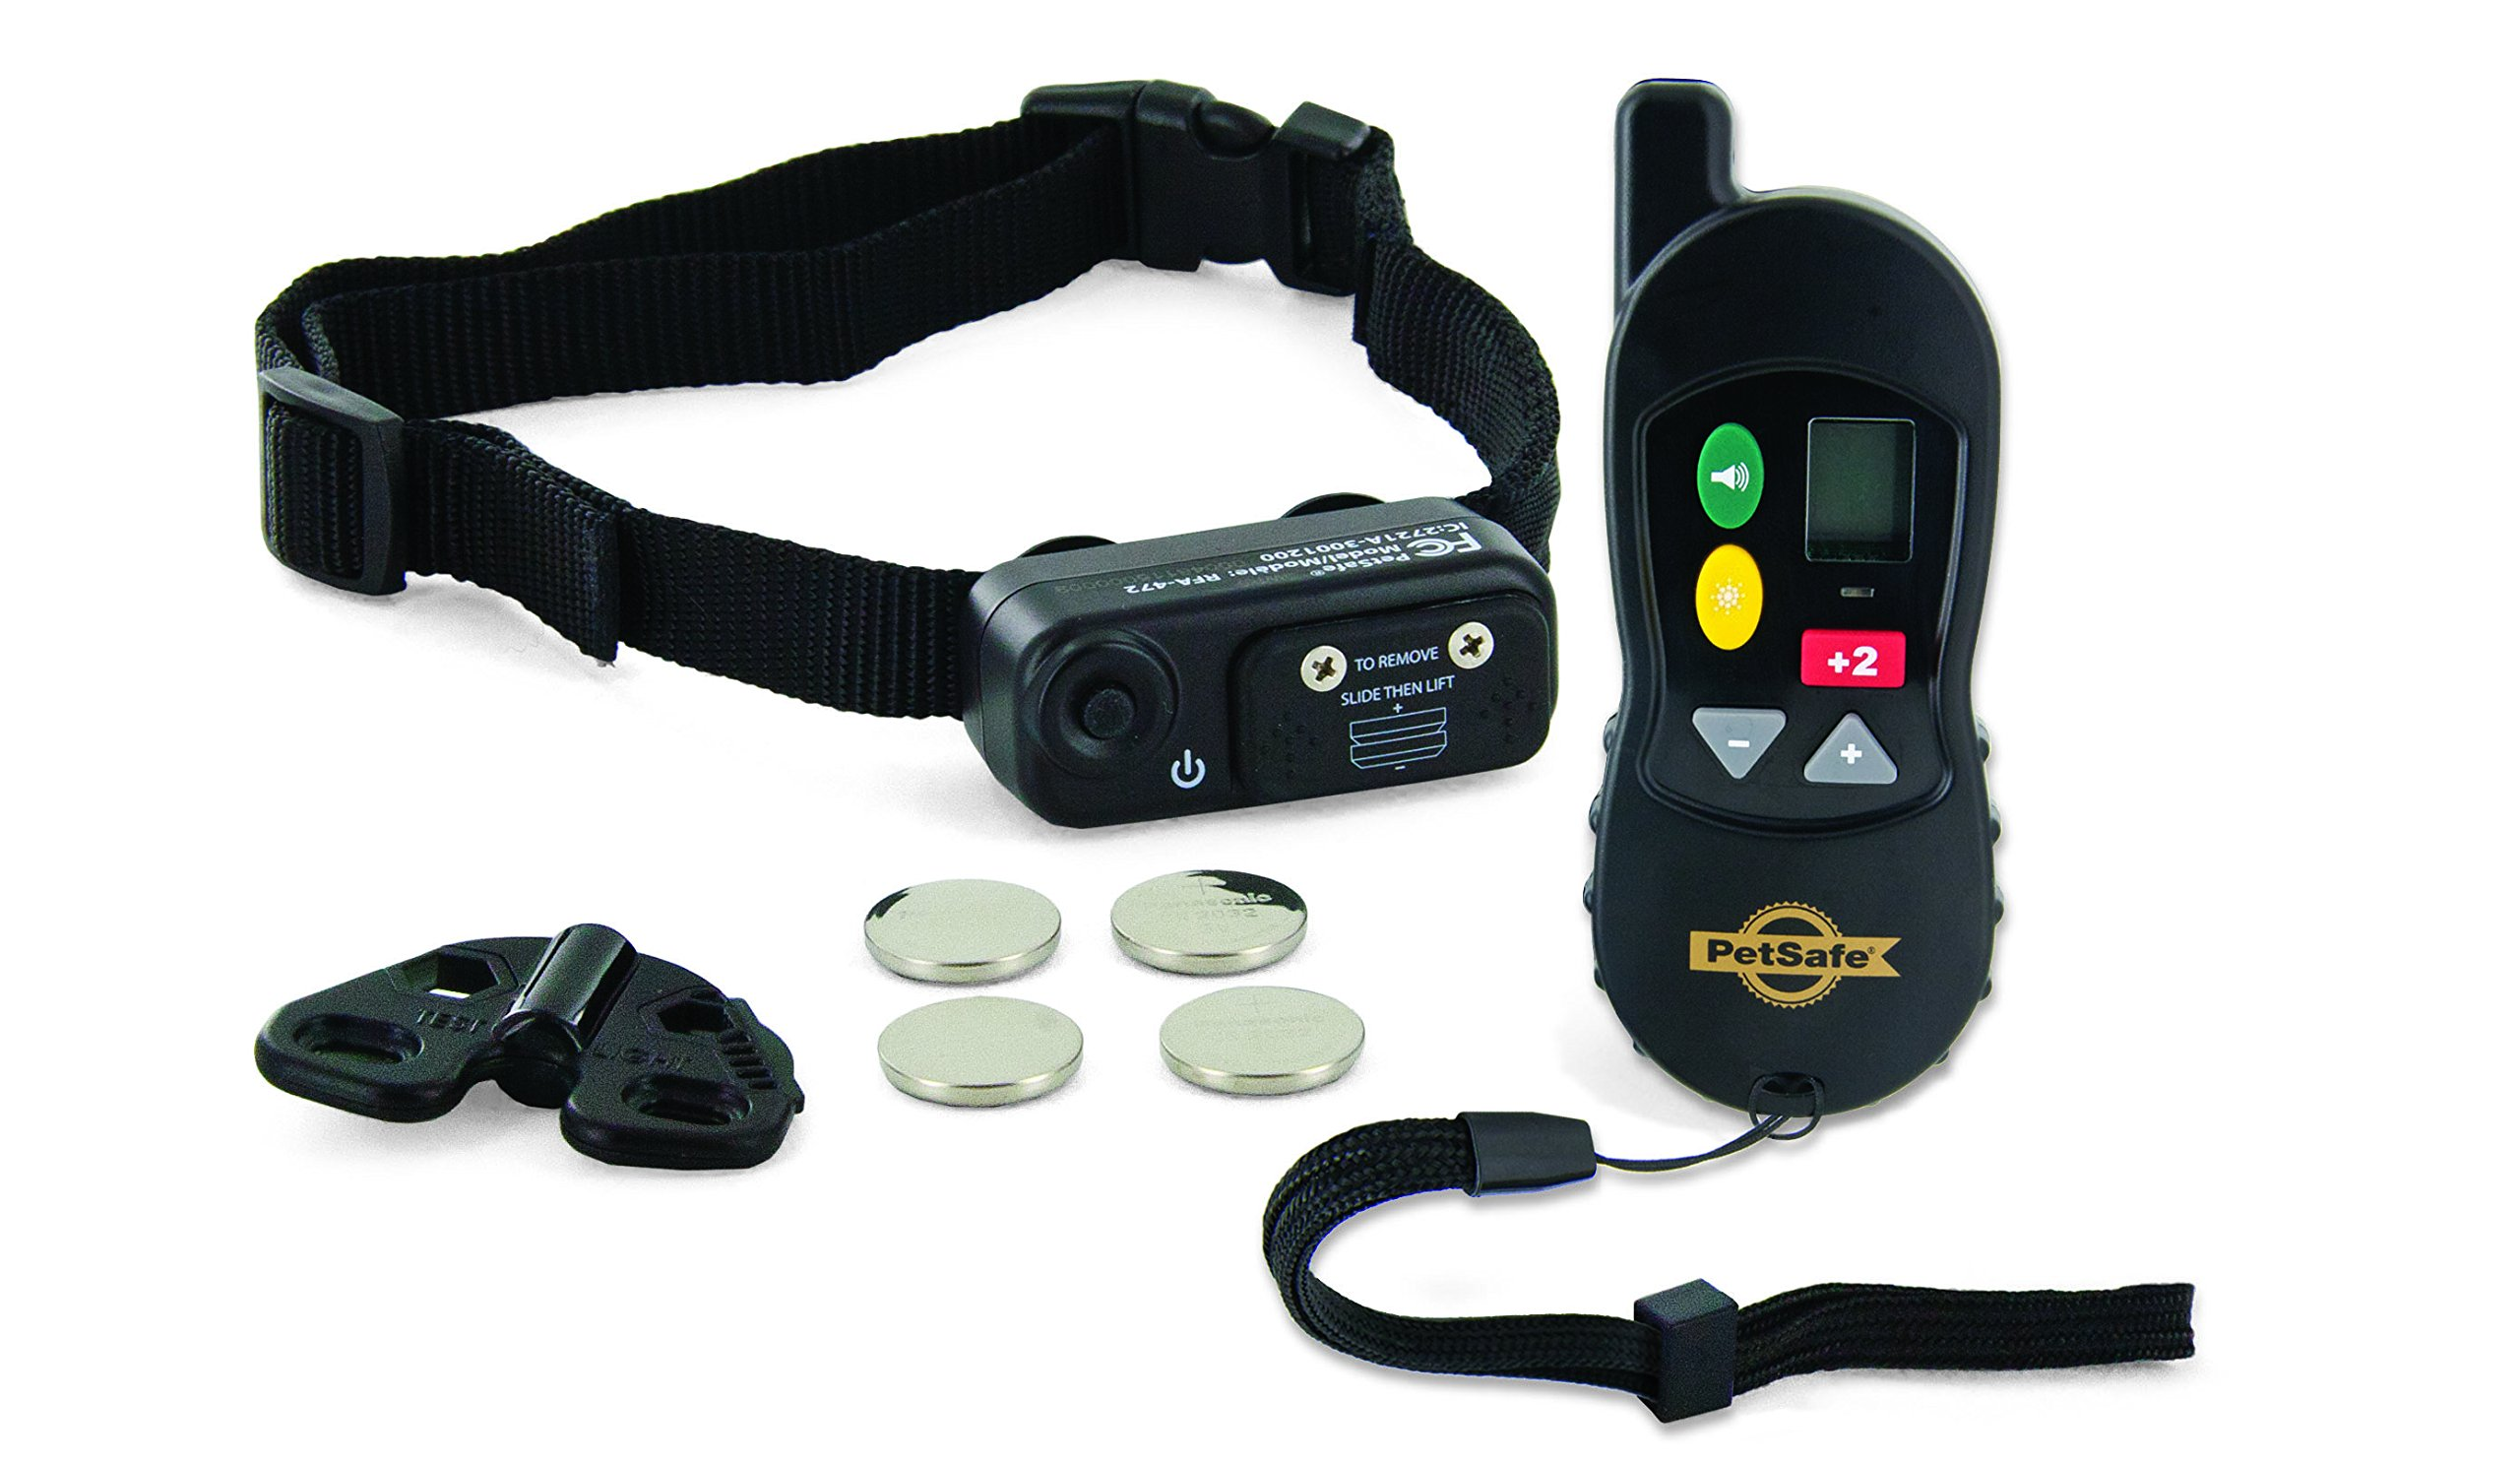 PetSafe Little Dog Remote Training Collar for Small and Medium Dogs from 8 - 40 lb. with Tone and Static Stimulation, Waterproof, Up to 100 Yards of Range, Electronic K-9 E-Collar